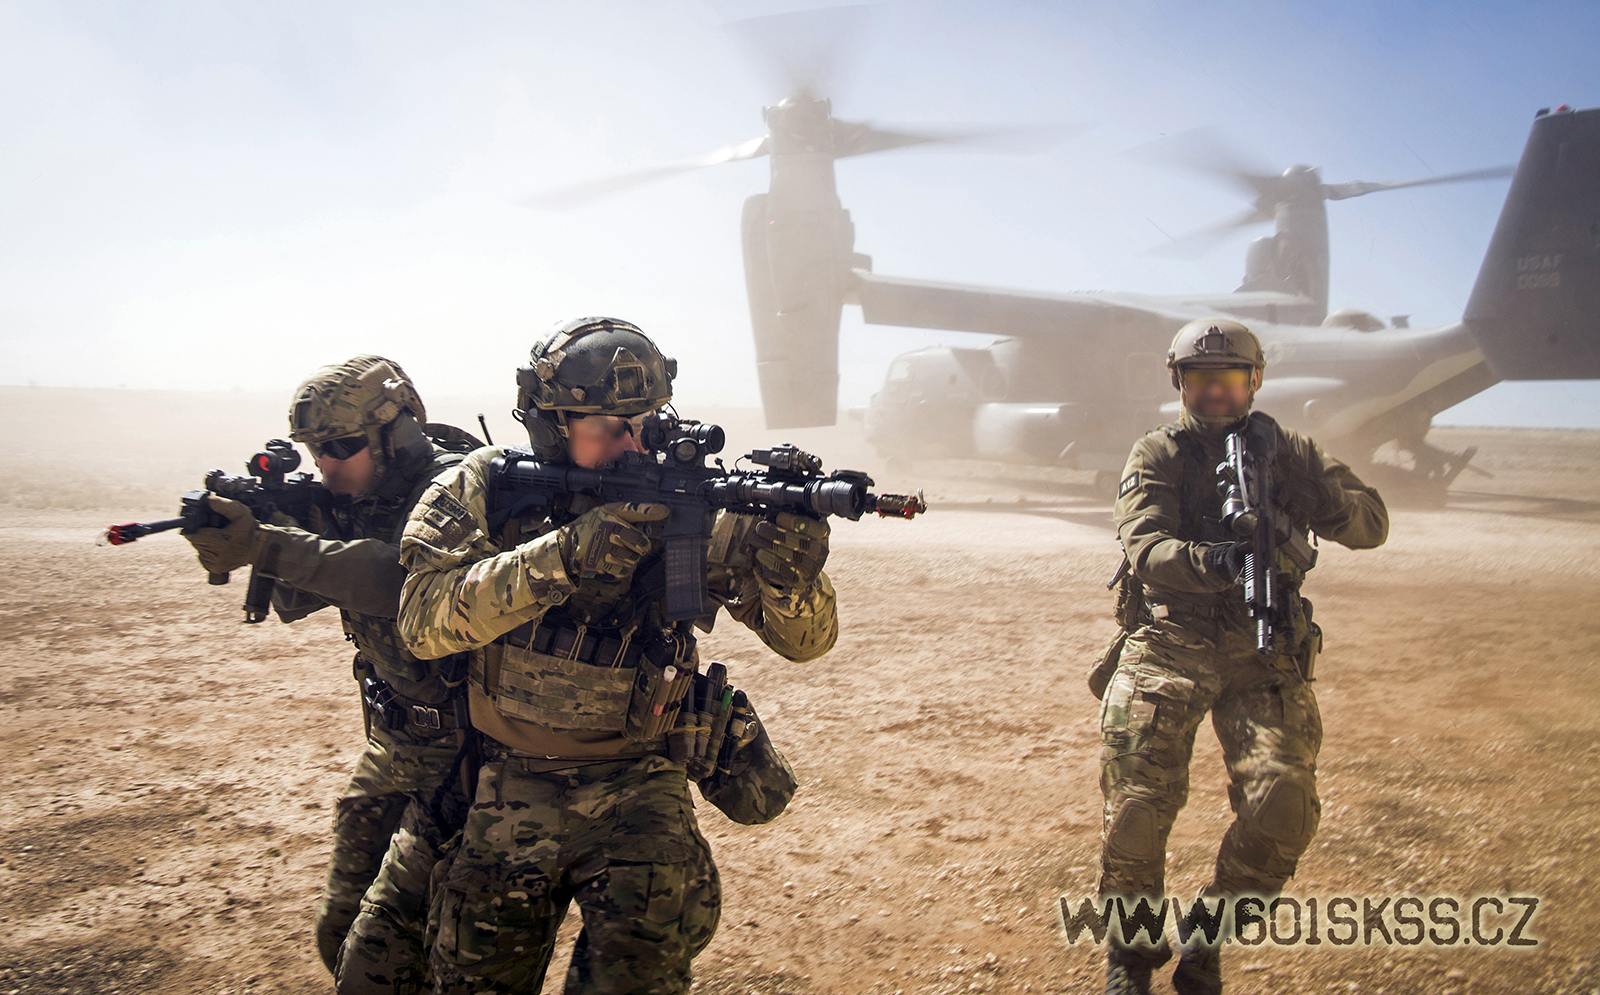 special operations team demo - HD1280×854